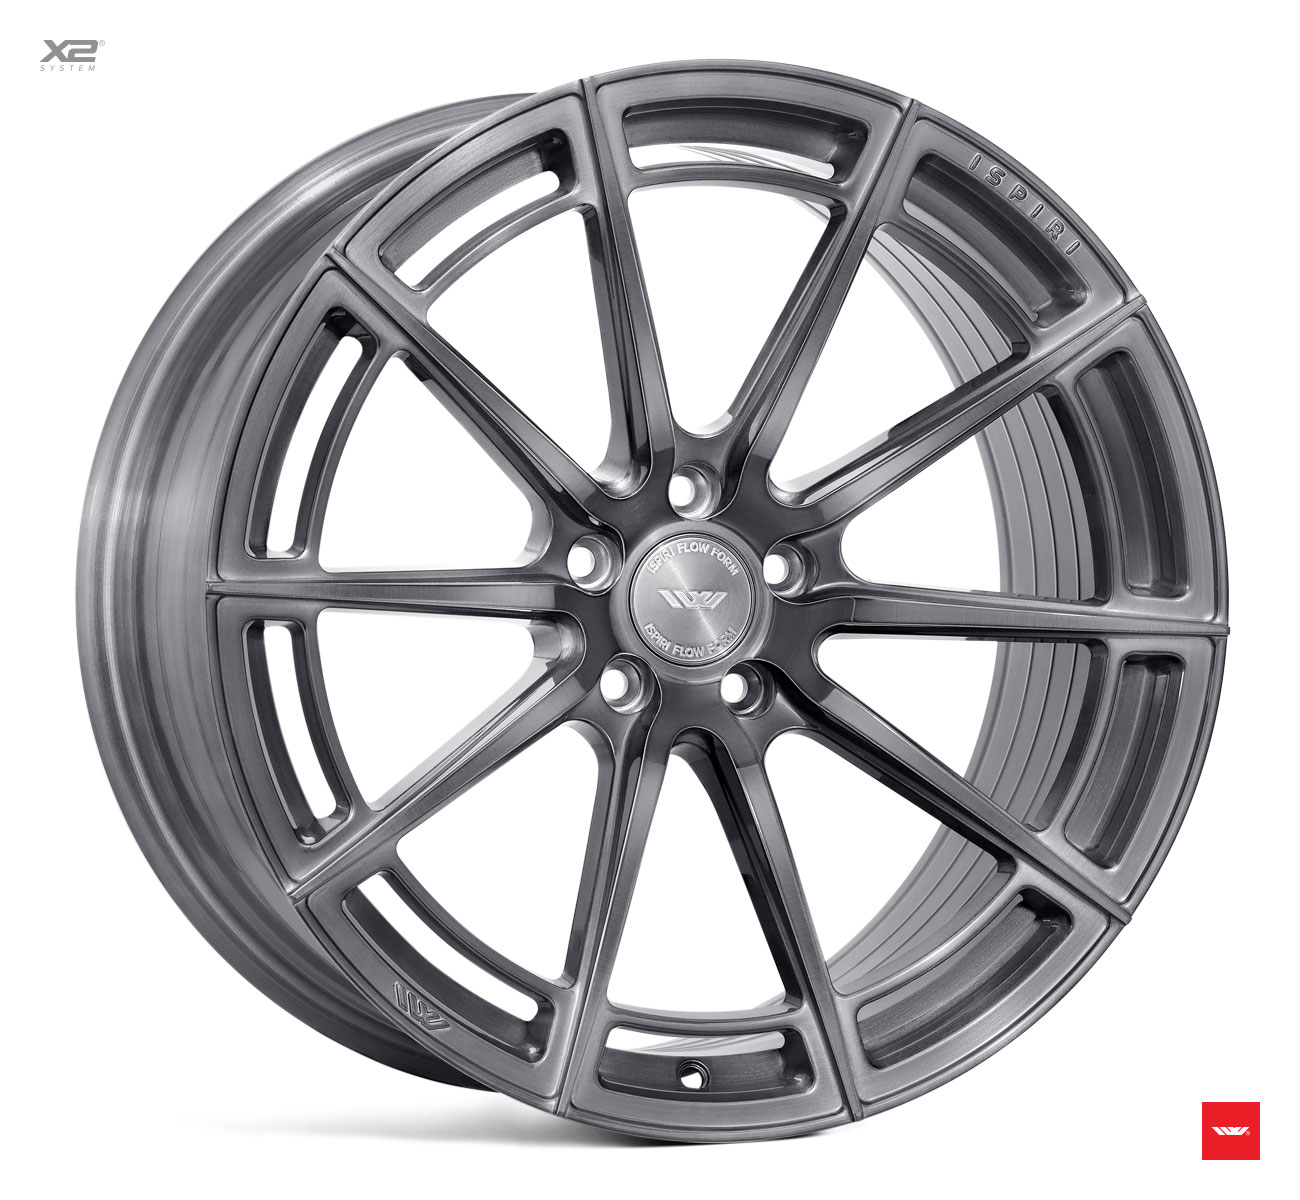 "NEW 20"" ISPIRI FFR2 MULTI-SPOKE ALLOY WHEELS IN FULL BRUSHED CARBON TITANIUM , WIDER 10"" OR 10.5"" REAR"